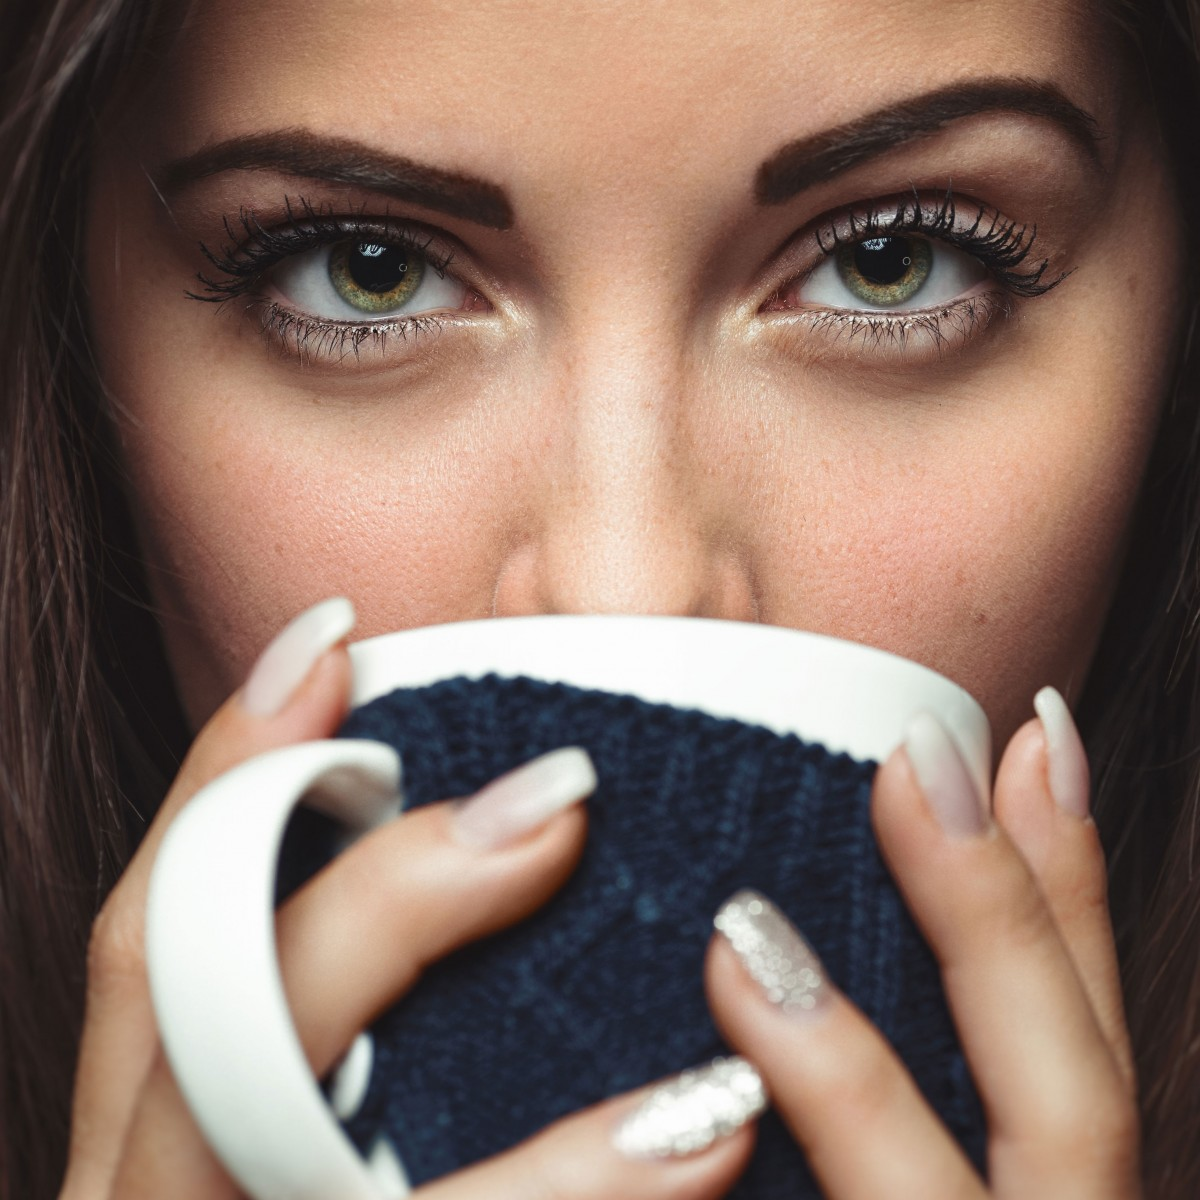 Why drinking coffee is good for your eyes